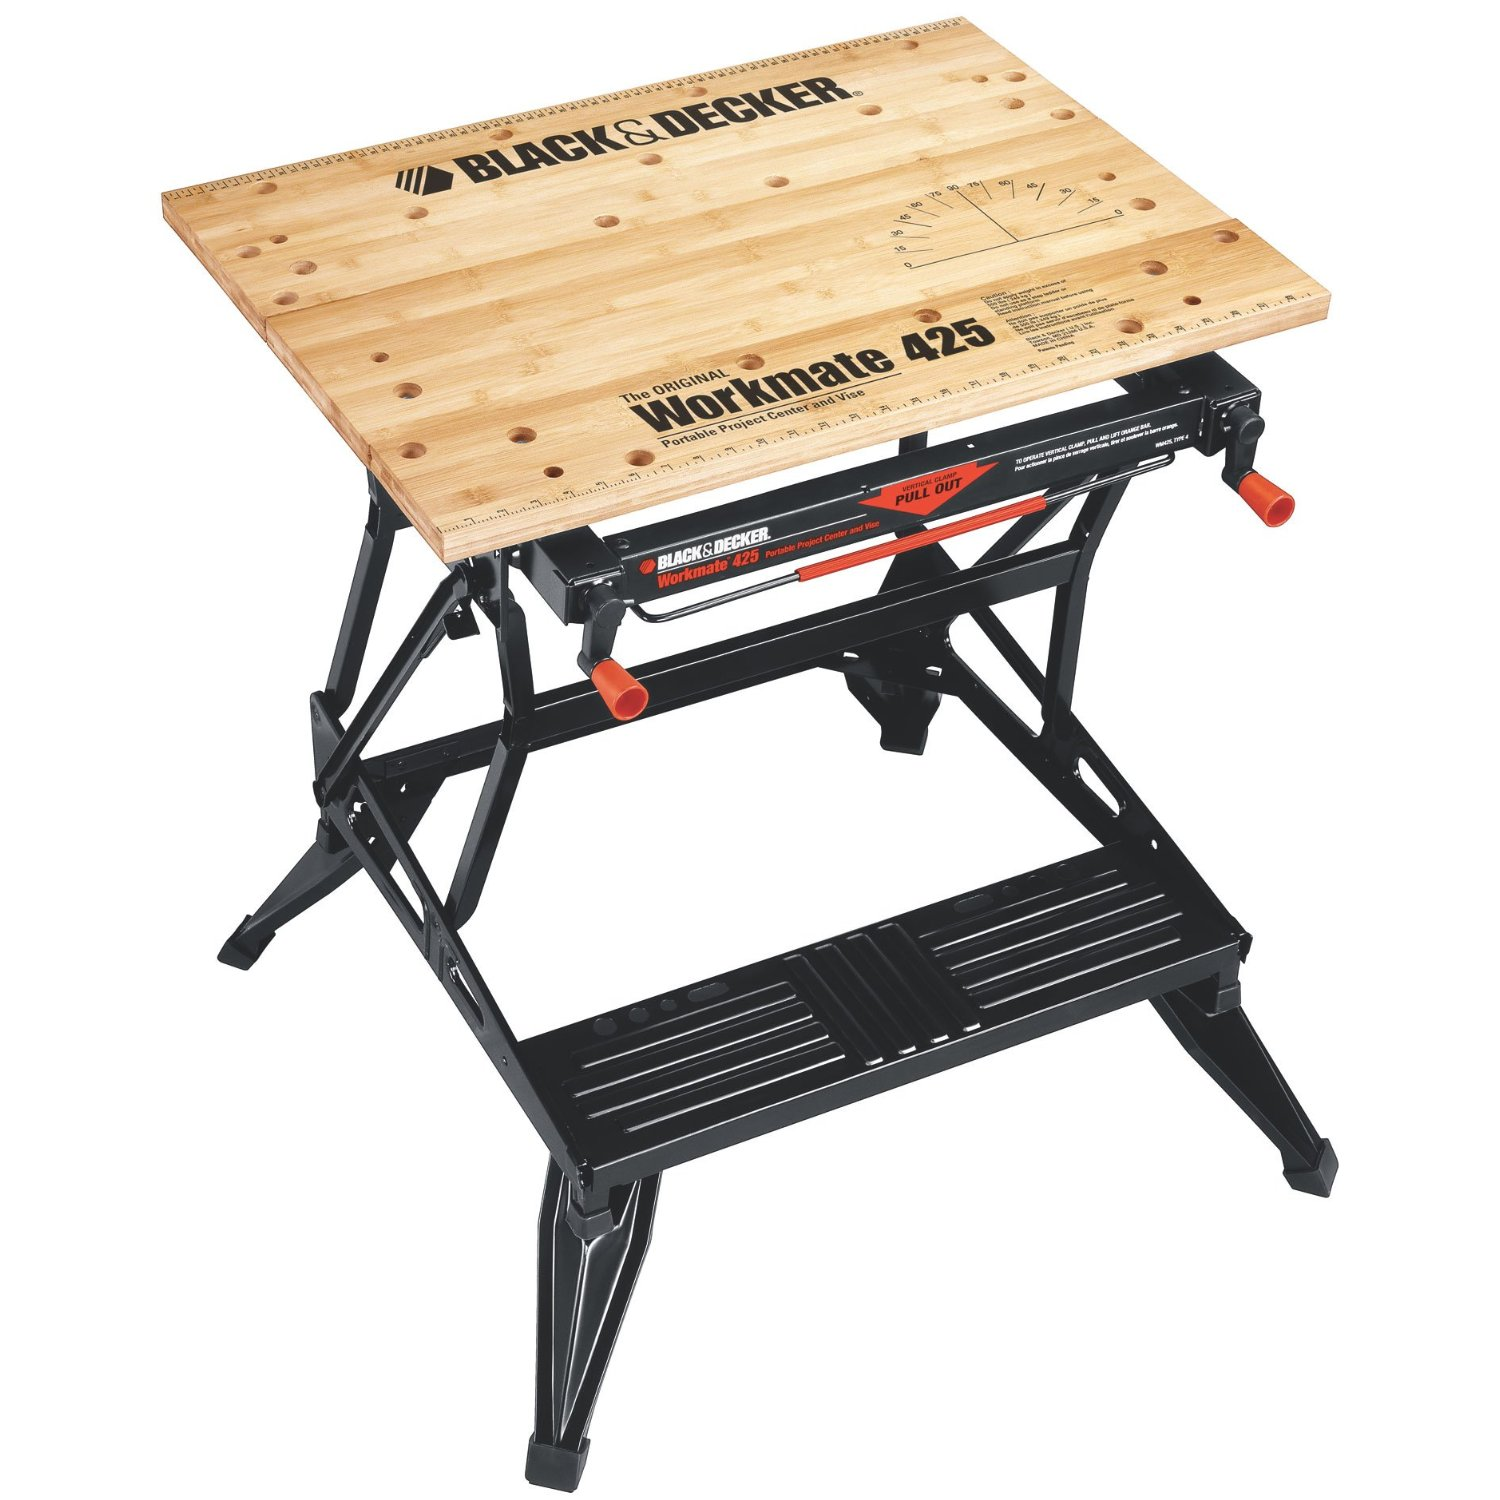 Black and decker workmate 425 workbench cheapest price - Aspirateur table black et decker ...